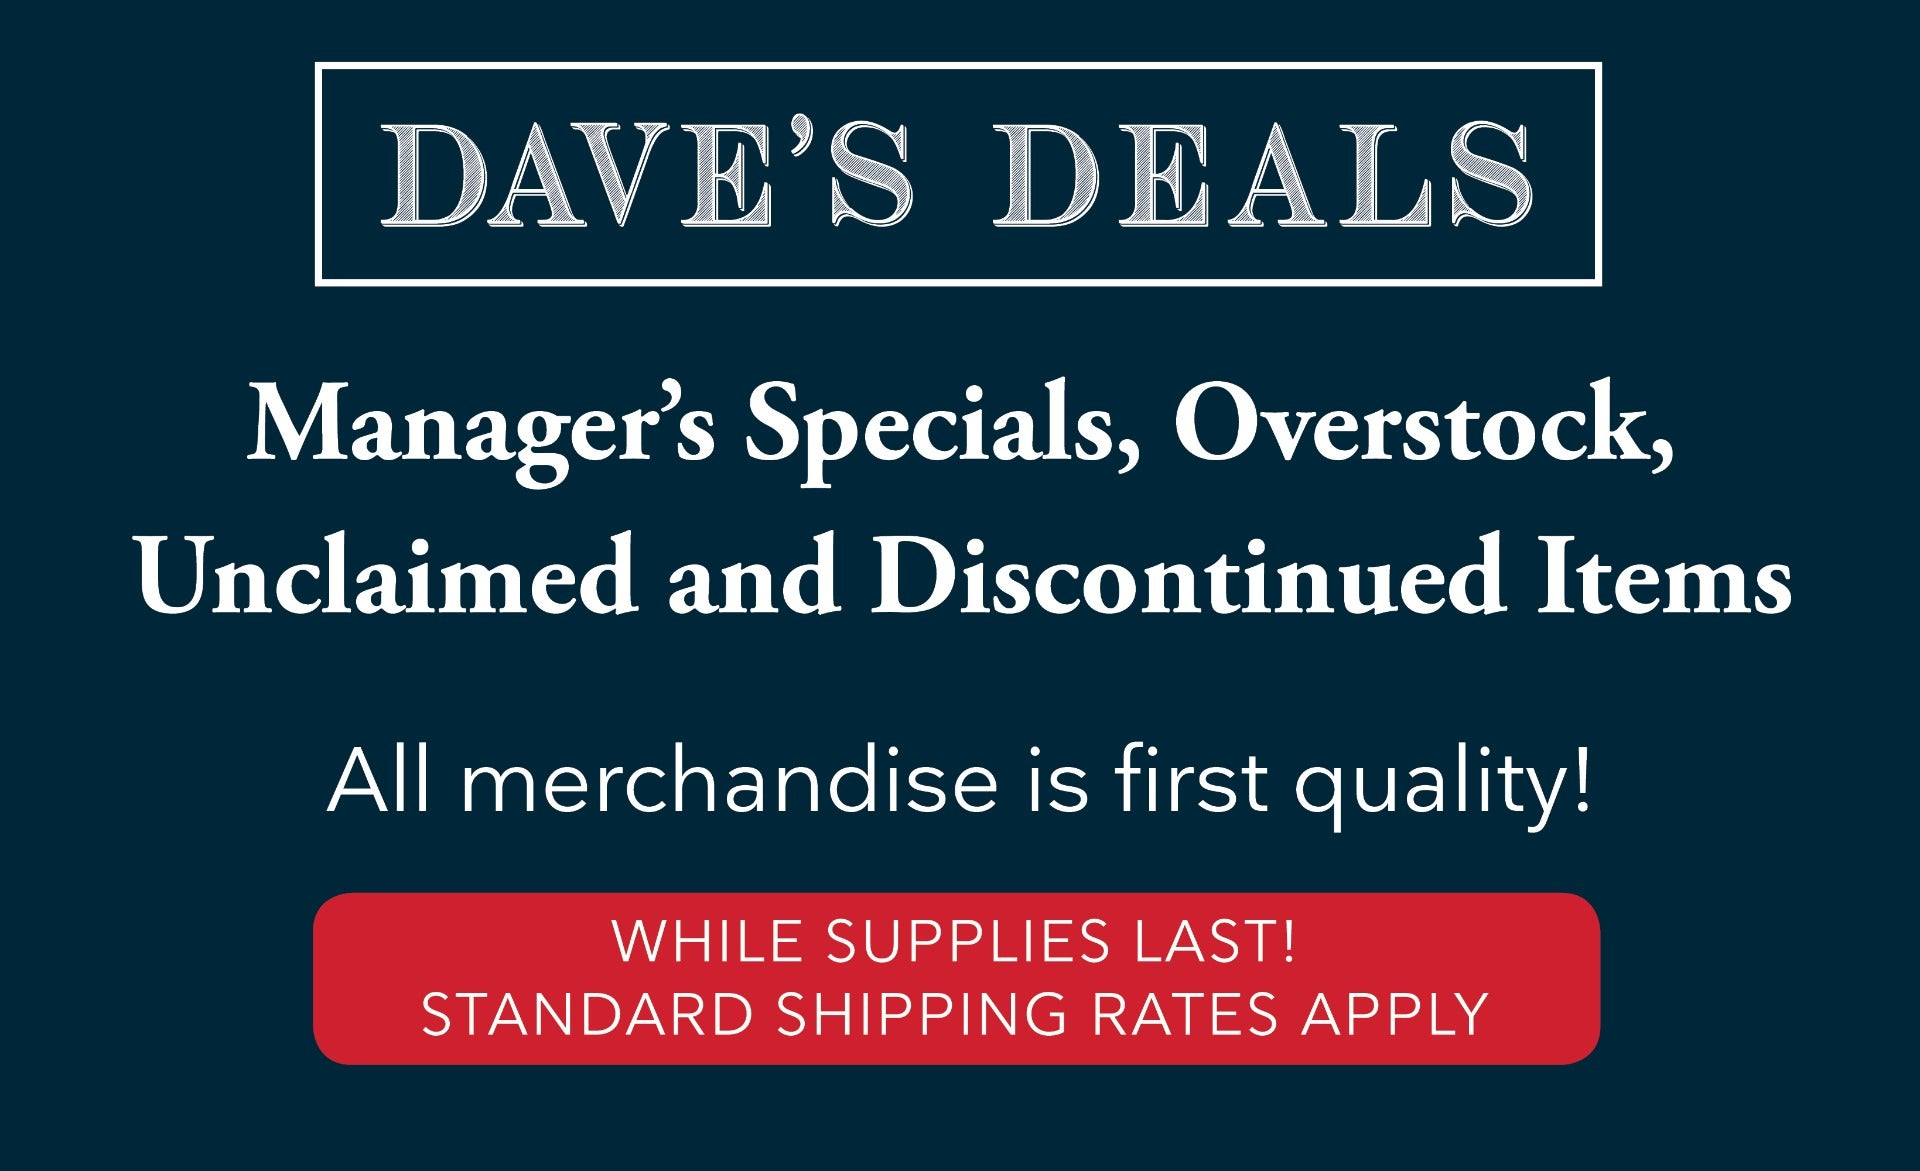 Ringsend Dave's Deals